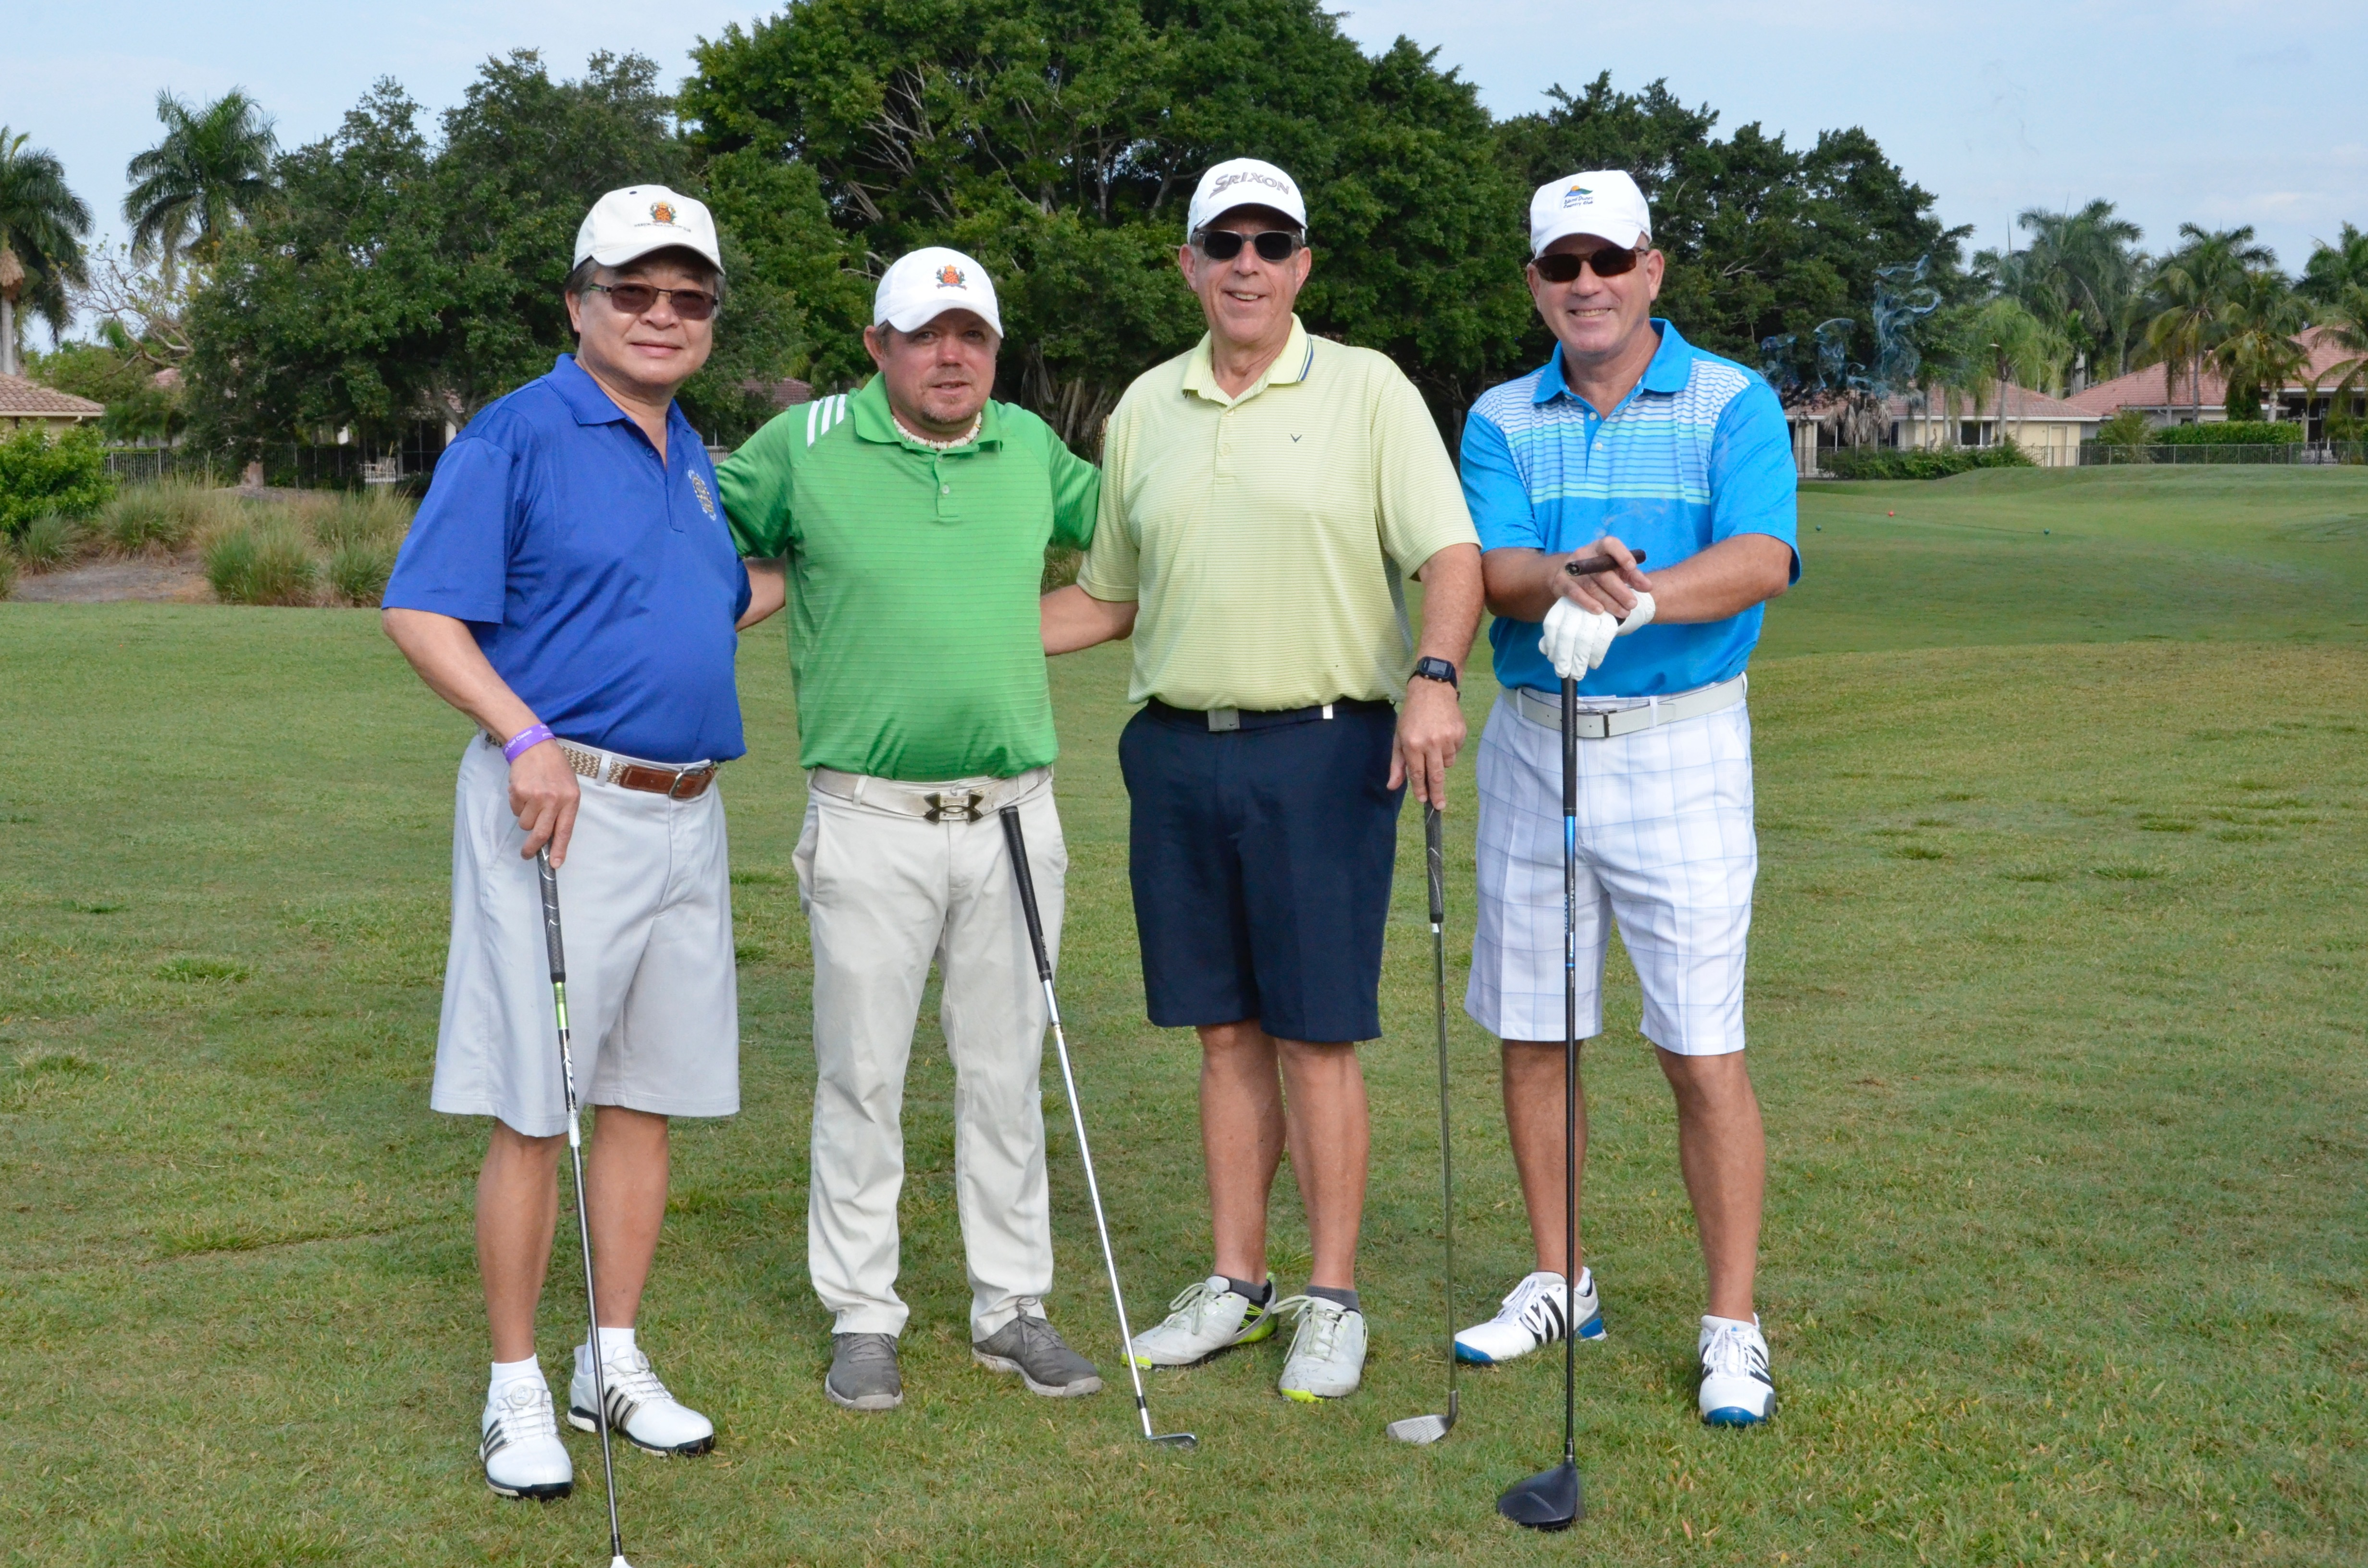 33rd Annual Rotary Golf Classic Sponsored by FHVLEGAL.COM gallery image #22